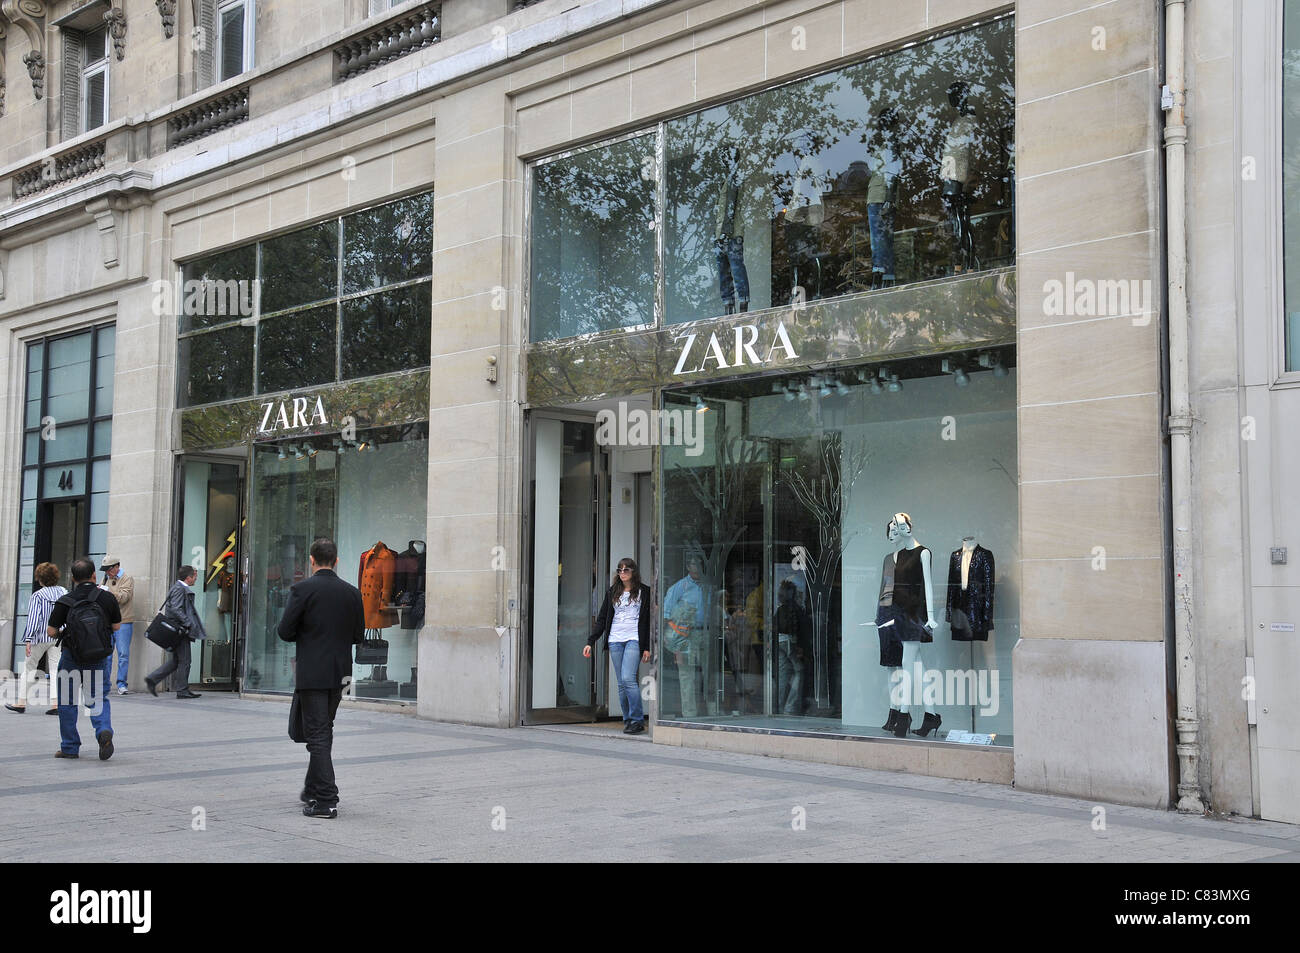 zara boutique paris france stock photo royalty free image 39420264 alamy. Black Bedroom Furniture Sets. Home Design Ideas